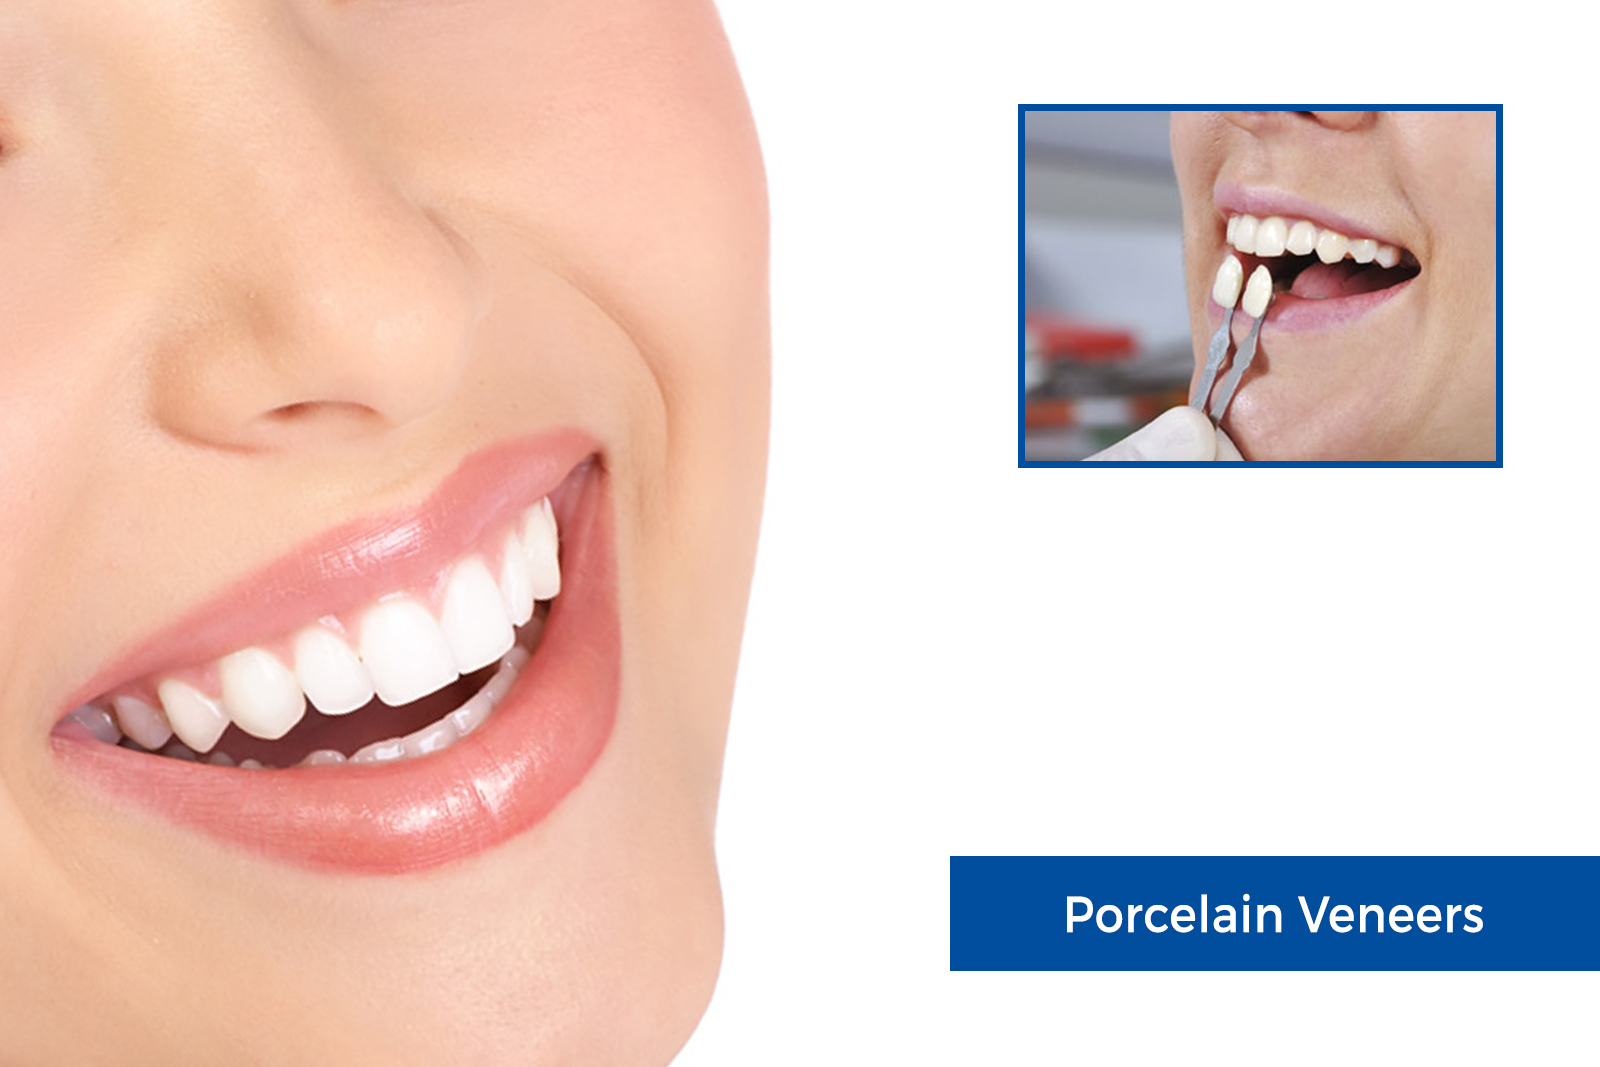 Using porcelain veneers to augment the smile